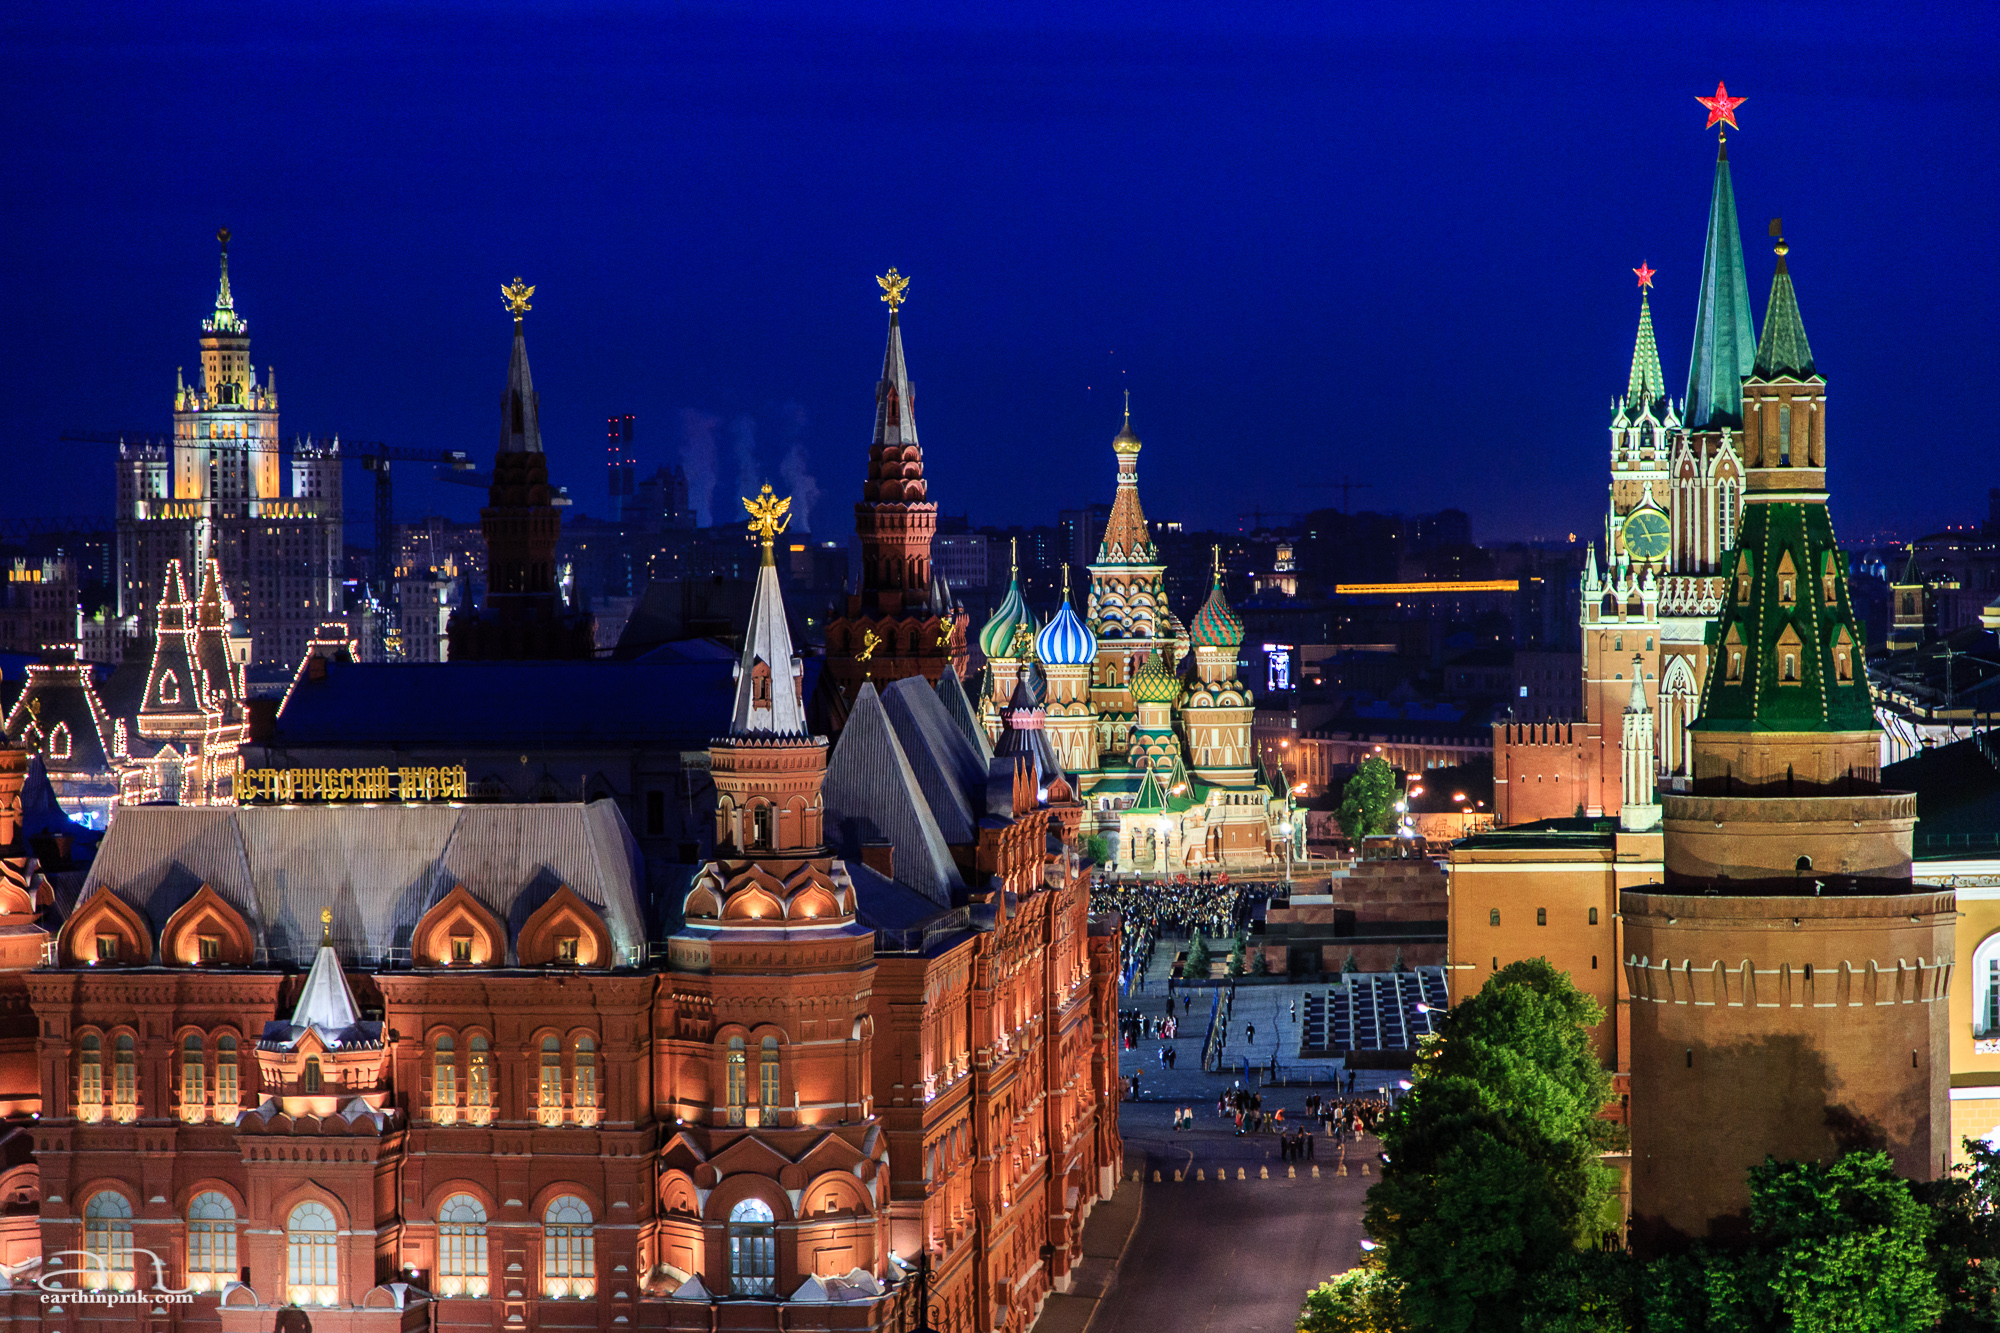 View of the Red Square from the O2 Lounge at the top of the Ritz Carlton in Moscow.